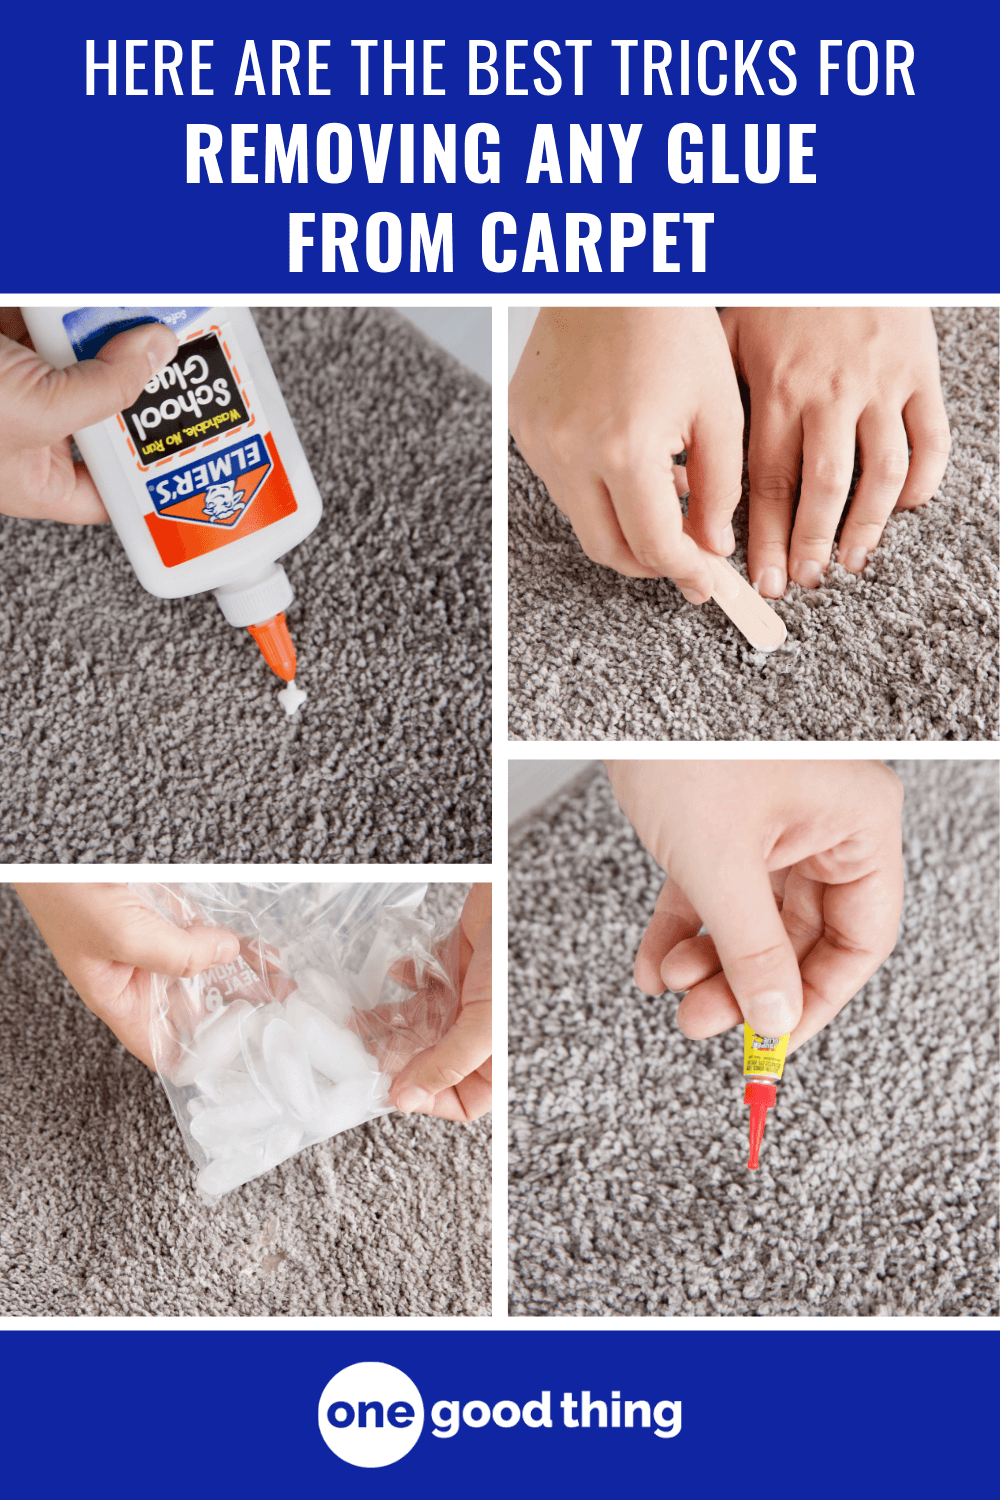 a43c56da46078e6e222fd984e1e8e3cb - How To Get Rid Of Super Glue From Glass